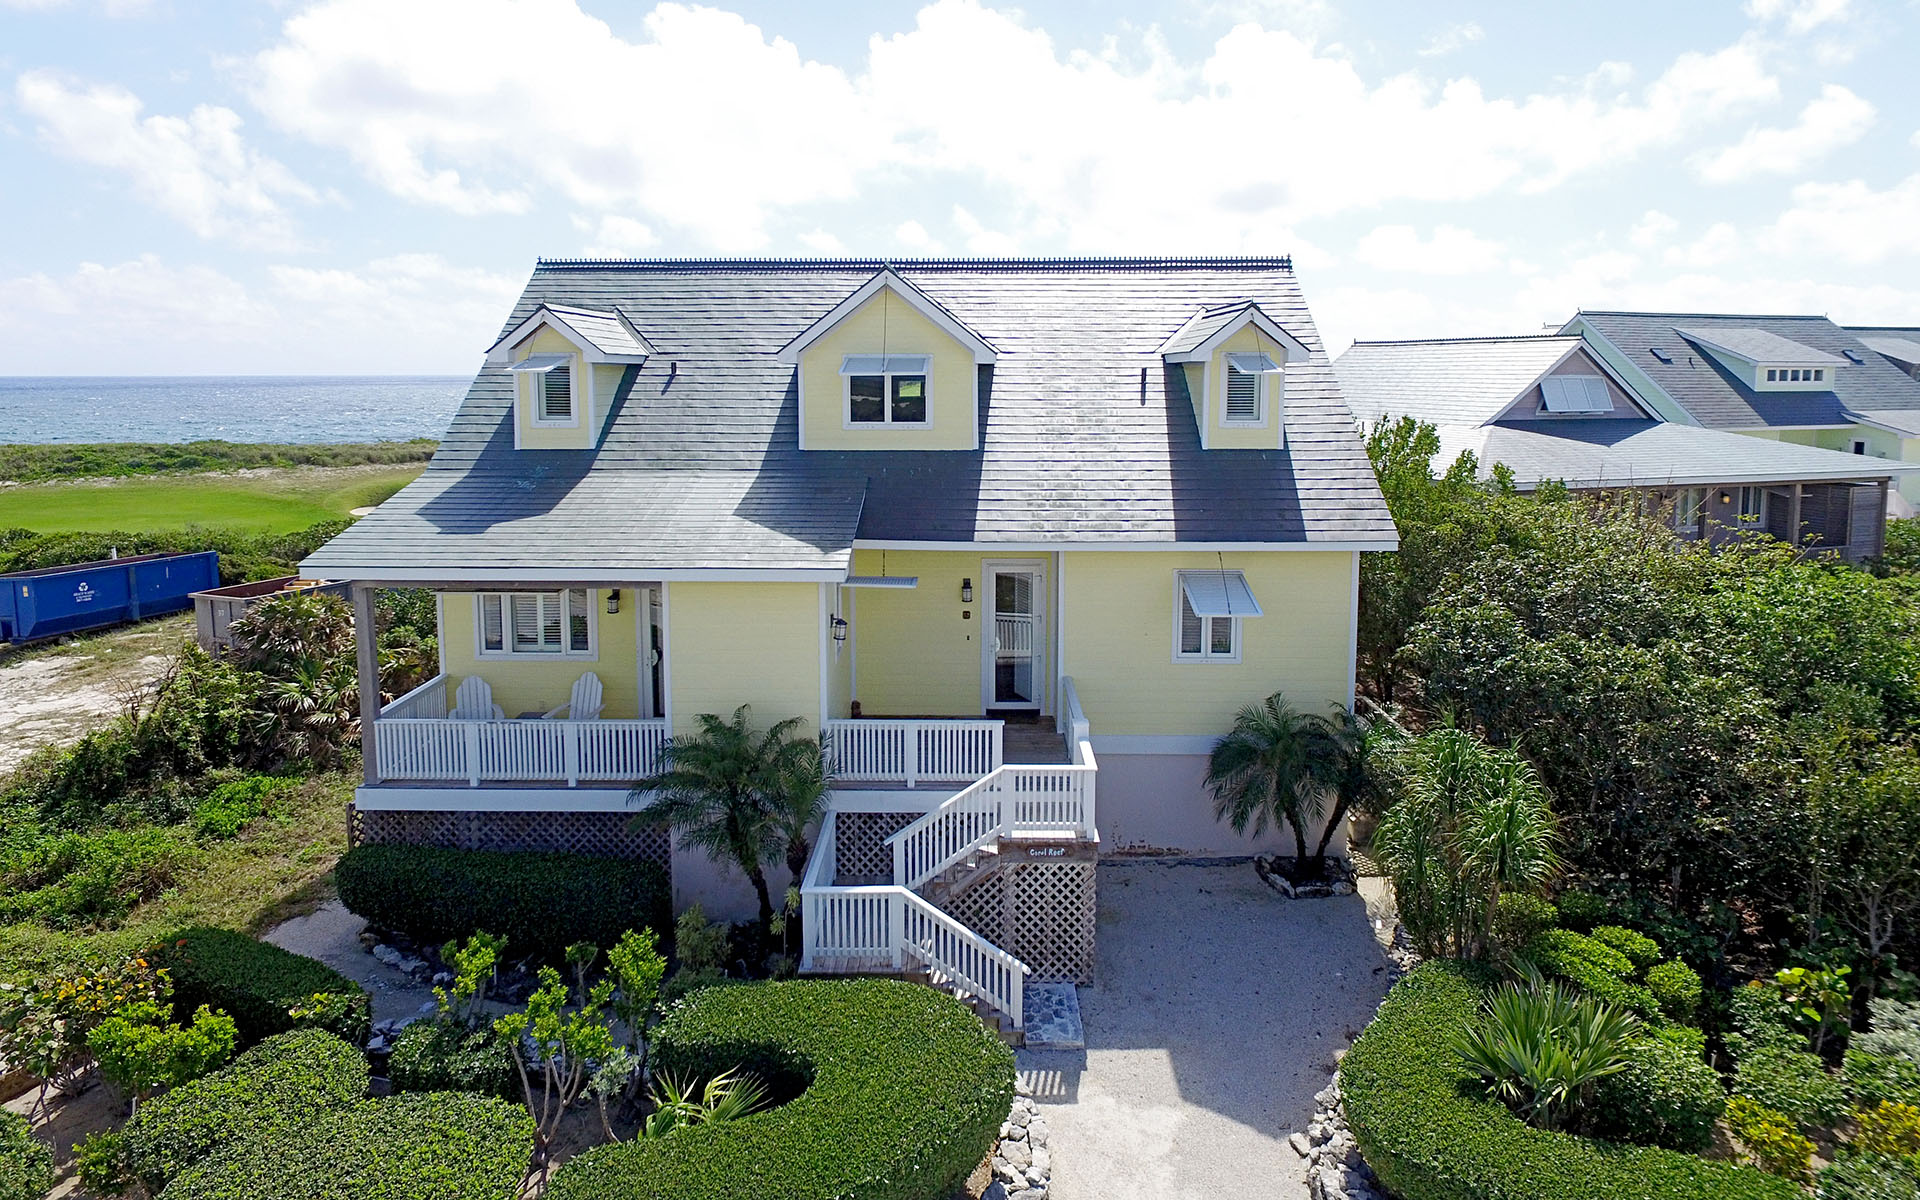 Single Family Home for Sale at Coral Reef, The Abaco Club, Winding Bay - MLS 29592 Winding Bay, Abaco, Bahamas